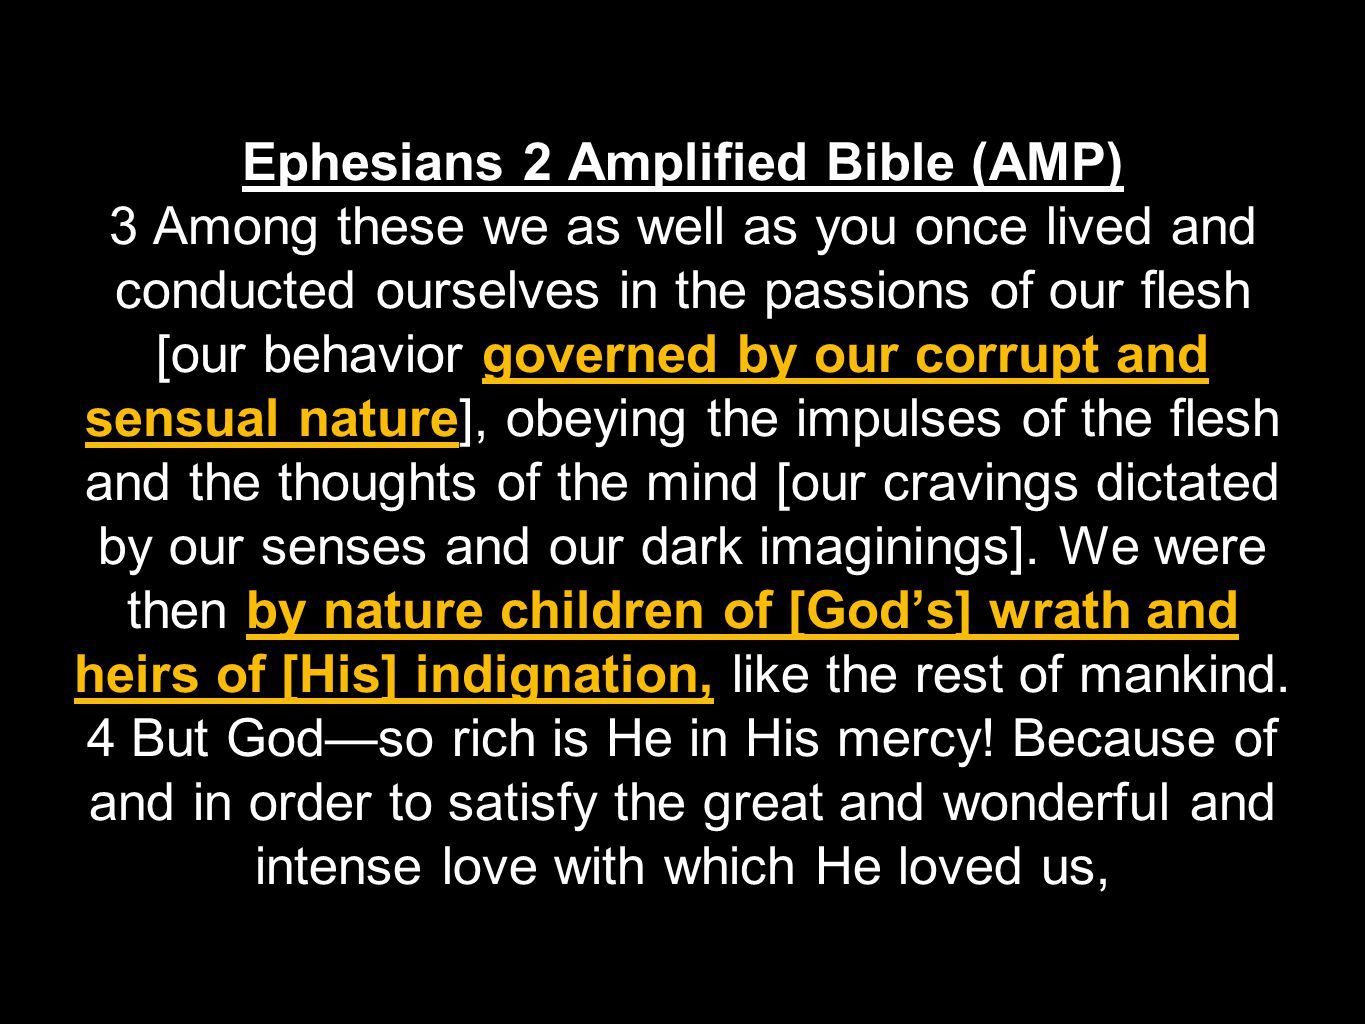 Ephesians 2 Amplified Bible (AMP) 3 Among these we as well as you once lived and conducted ourselves in the passions of our flesh [our behavior govern